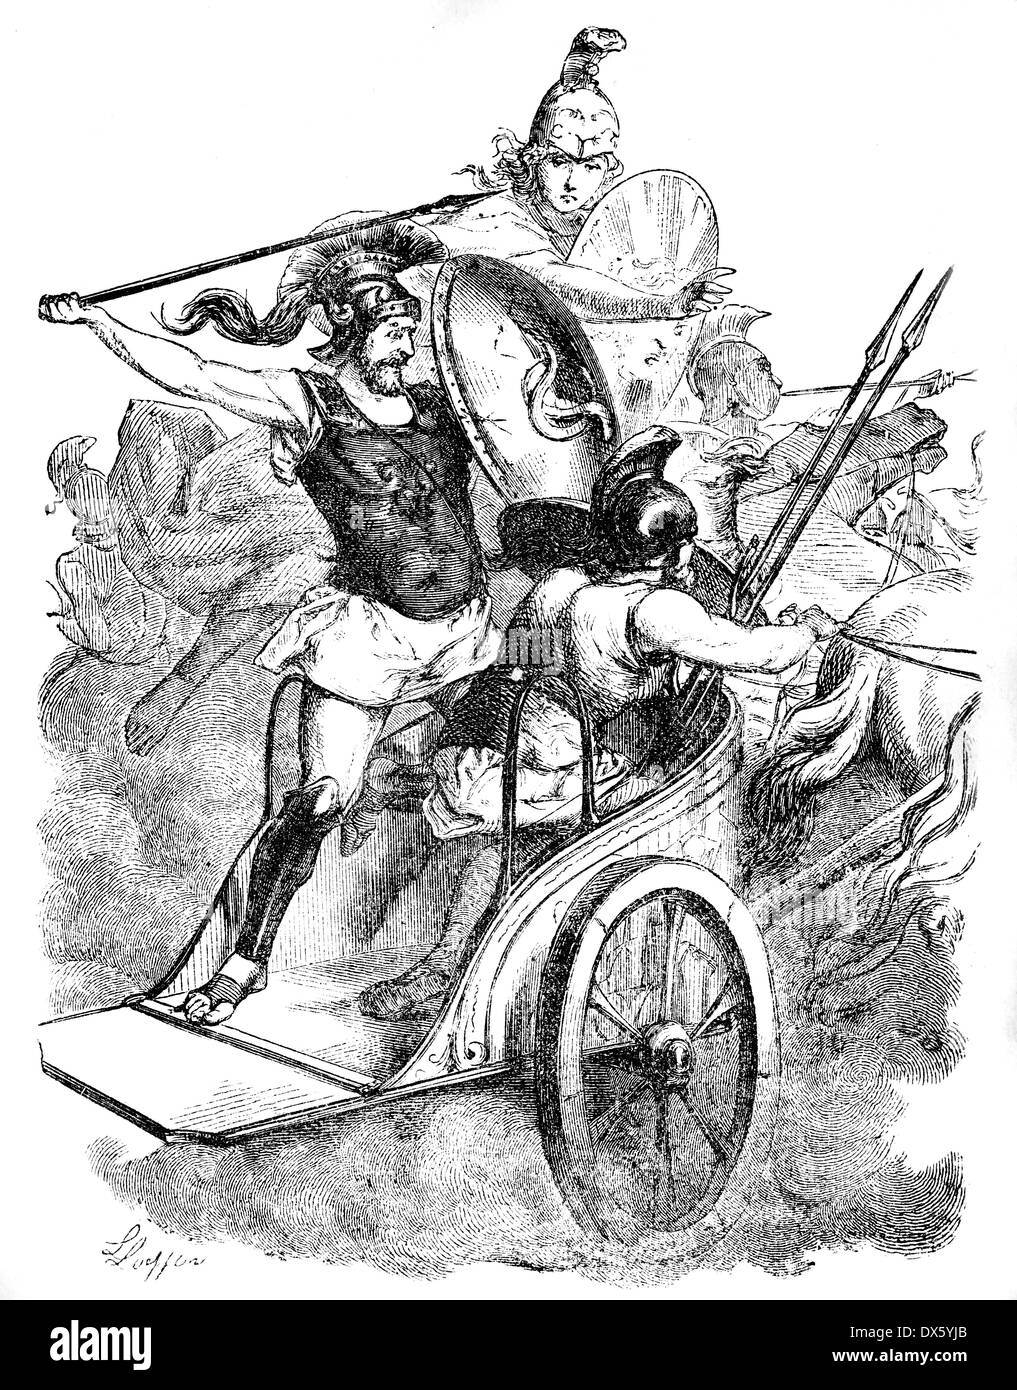 Diomedes on chariot, illustration from book dated 1878 - Stock Image